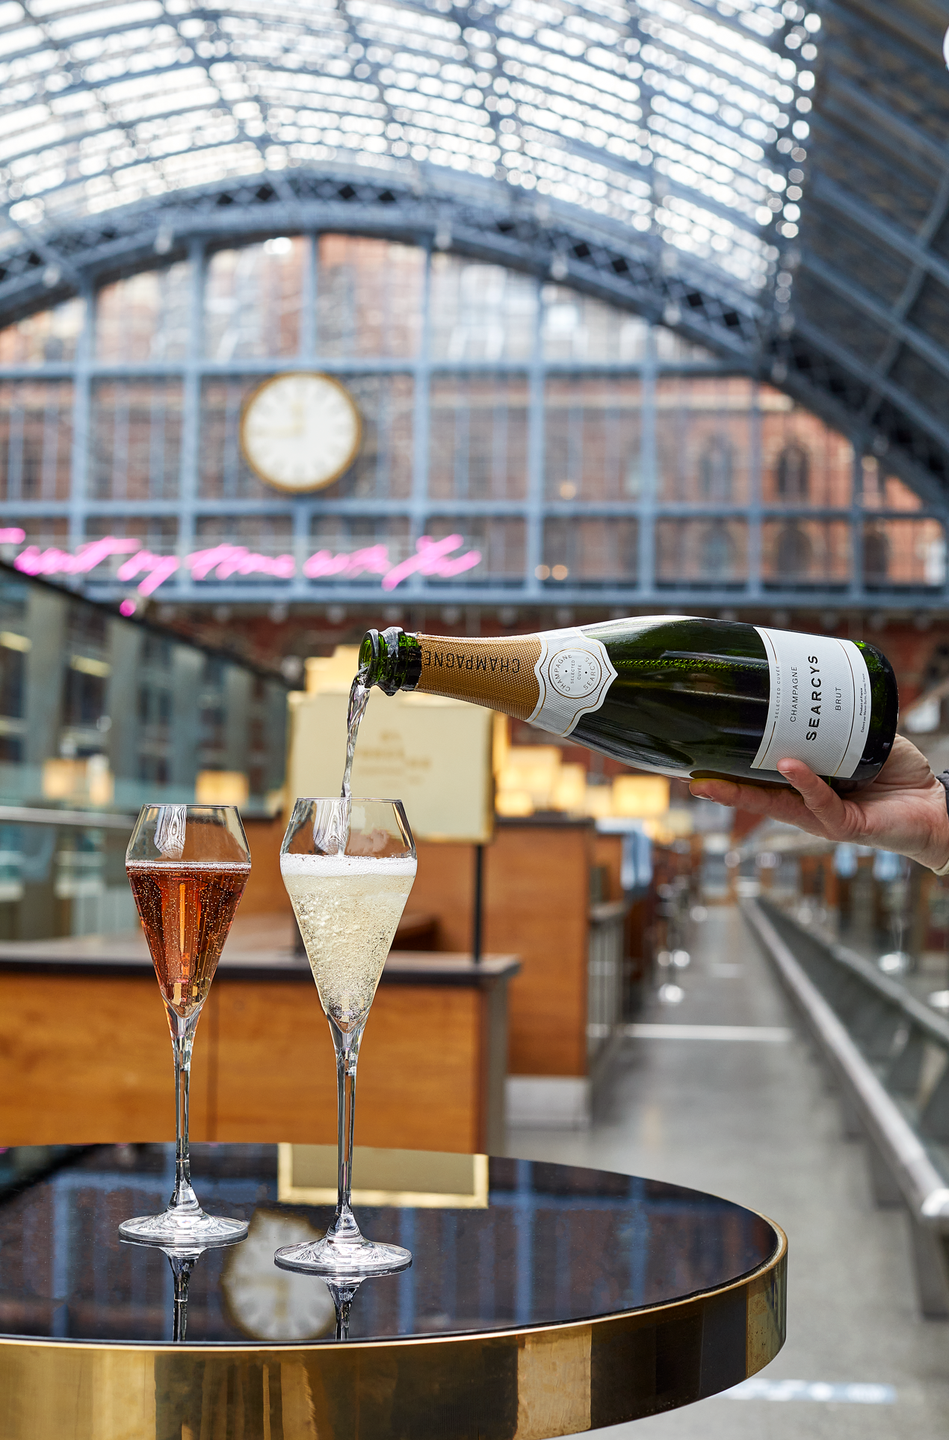 """<p><strong>Happy hour deal:</strong></p><p>The St Pancras champagne bar - found inside the station - is currently offering '4 O'Clocksies', available from 4-6pm. You'll get two glasses of Searcy's Selected Cuvée Champagne with four delicious savoury bites, including Rarebit; Salt beef and piccalilli brioche bun; Creedy Carver chicken pie and Celtic prawn cocktail bridge roll for £29 for two people<br></p><p>Find out more <a href=""""https://stpancrasbysearcys.co.uk/"""" rel=""""nofollow noopener"""" target=""""_blank"""" data-ylk=""""slk:here"""" class=""""link rapid-noclick-resp"""">here</a>.</p>"""